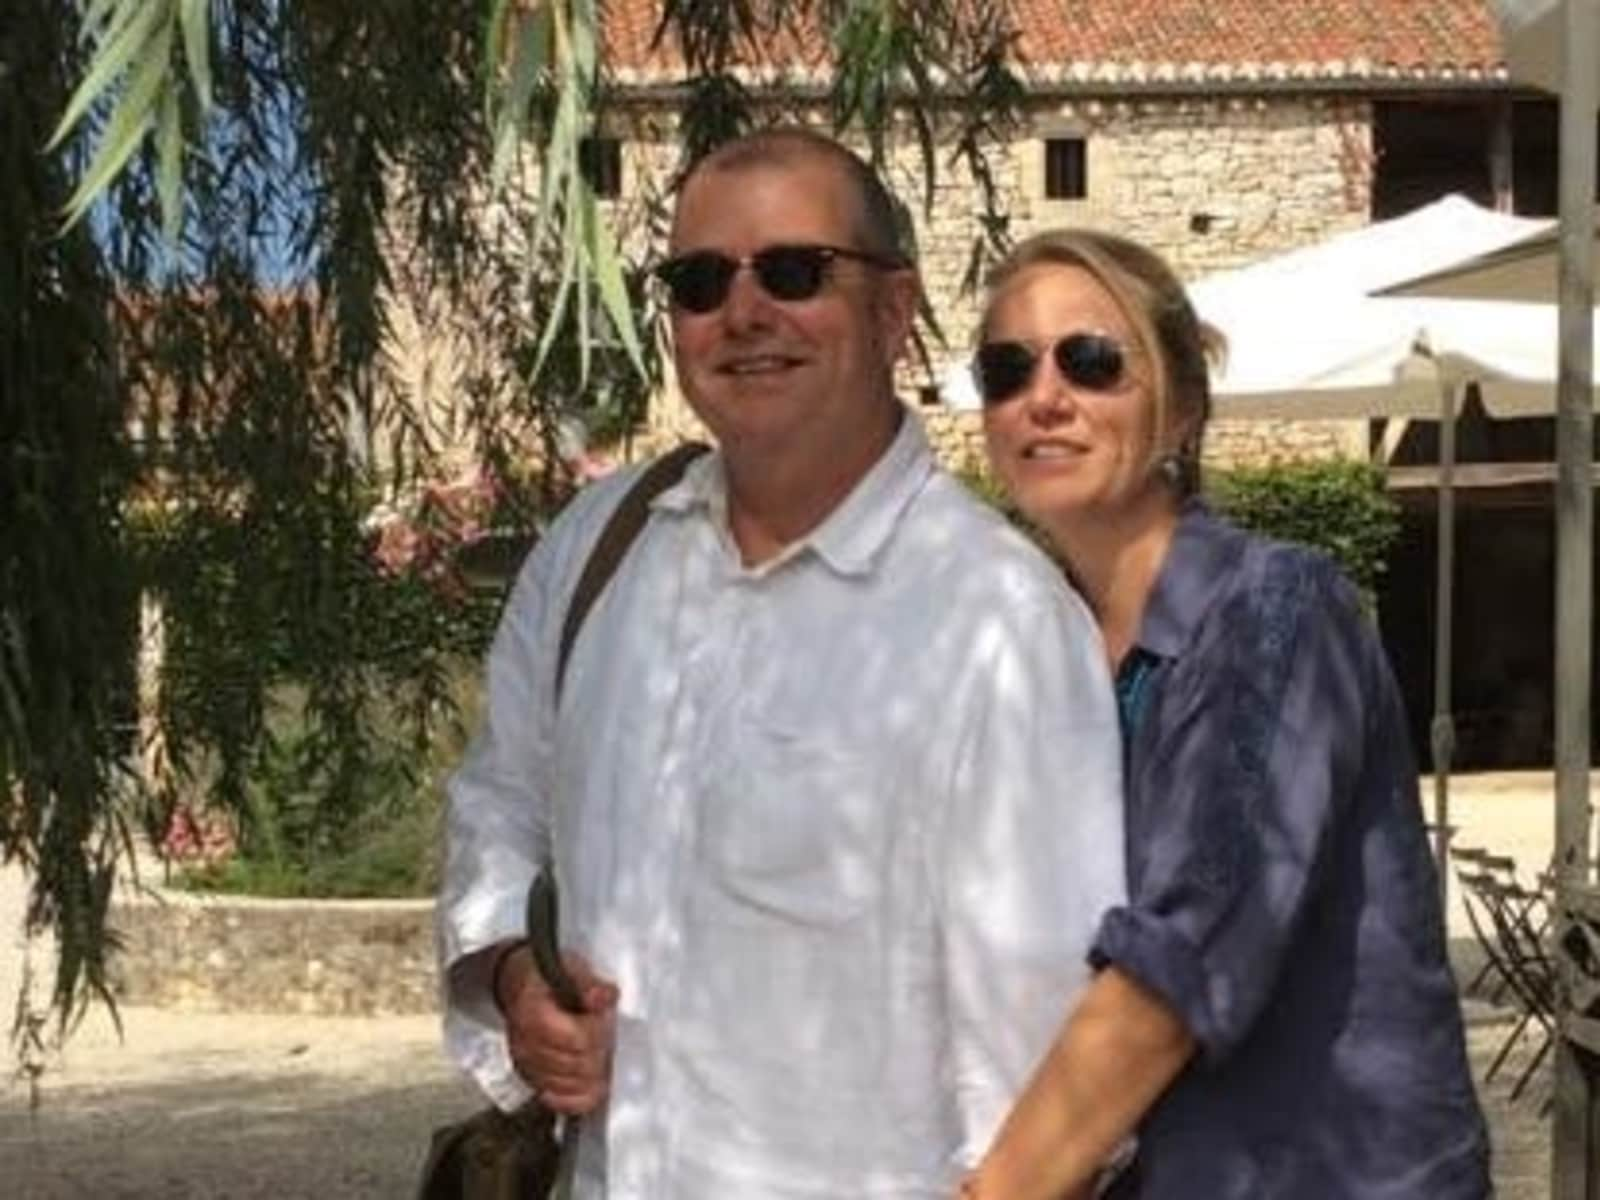 Astrid & Colin from Lauzerte, France